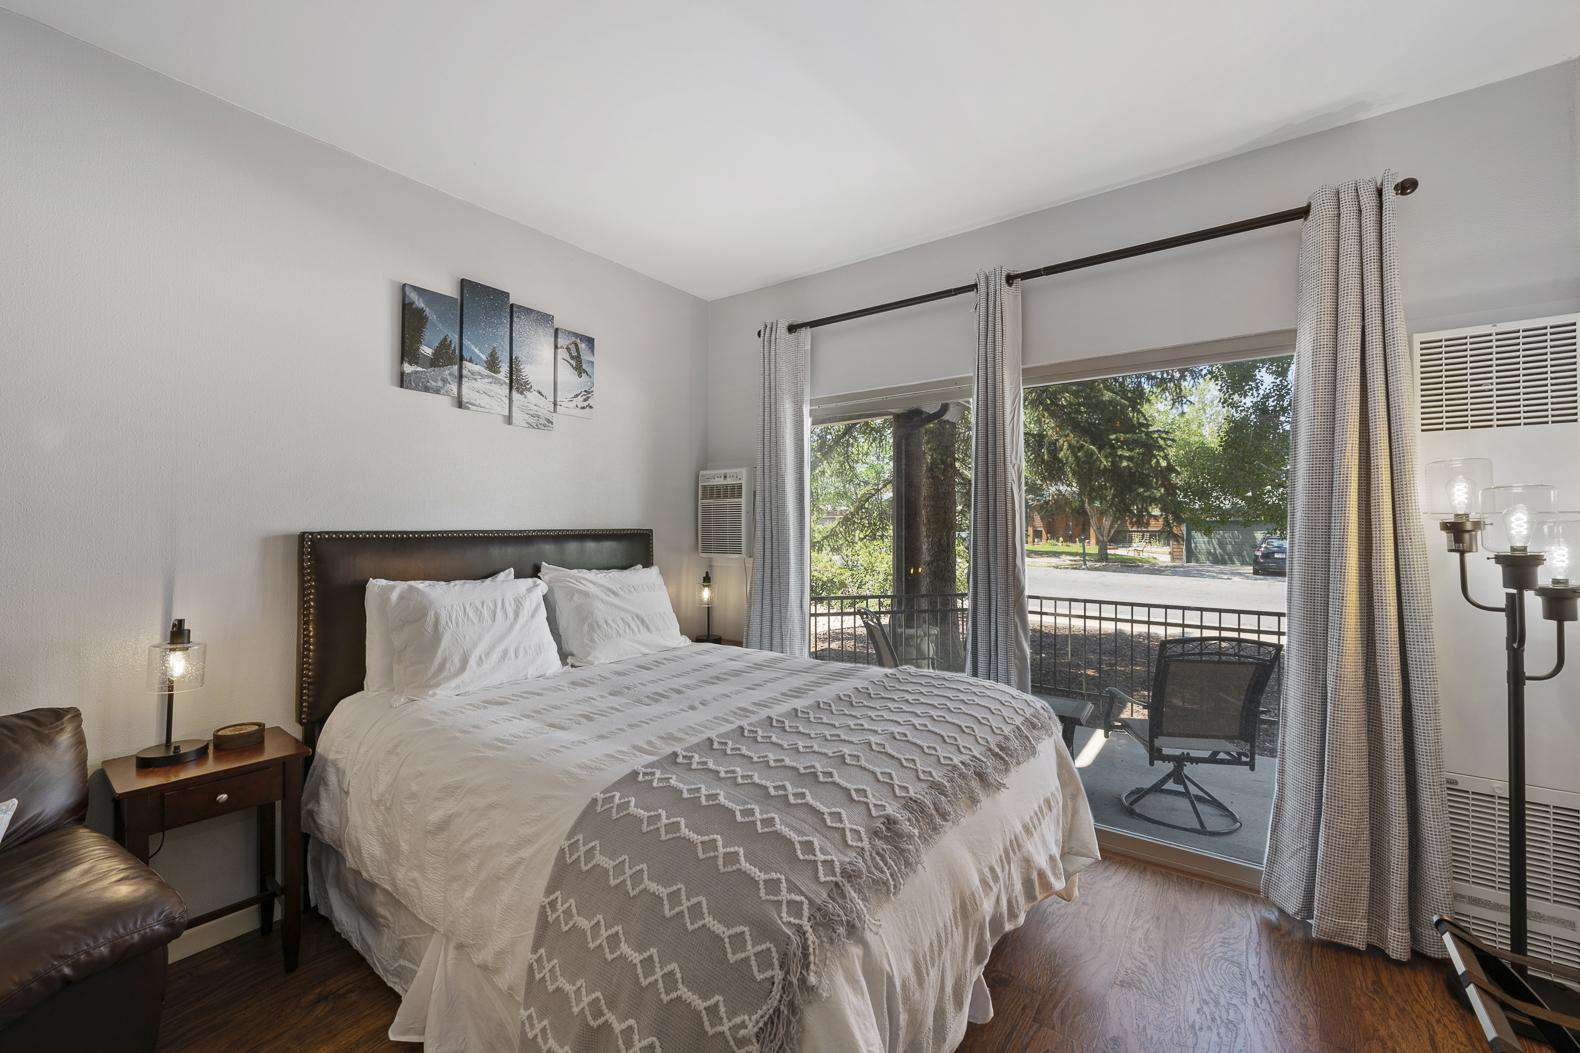 Queen Bed with Natural Light